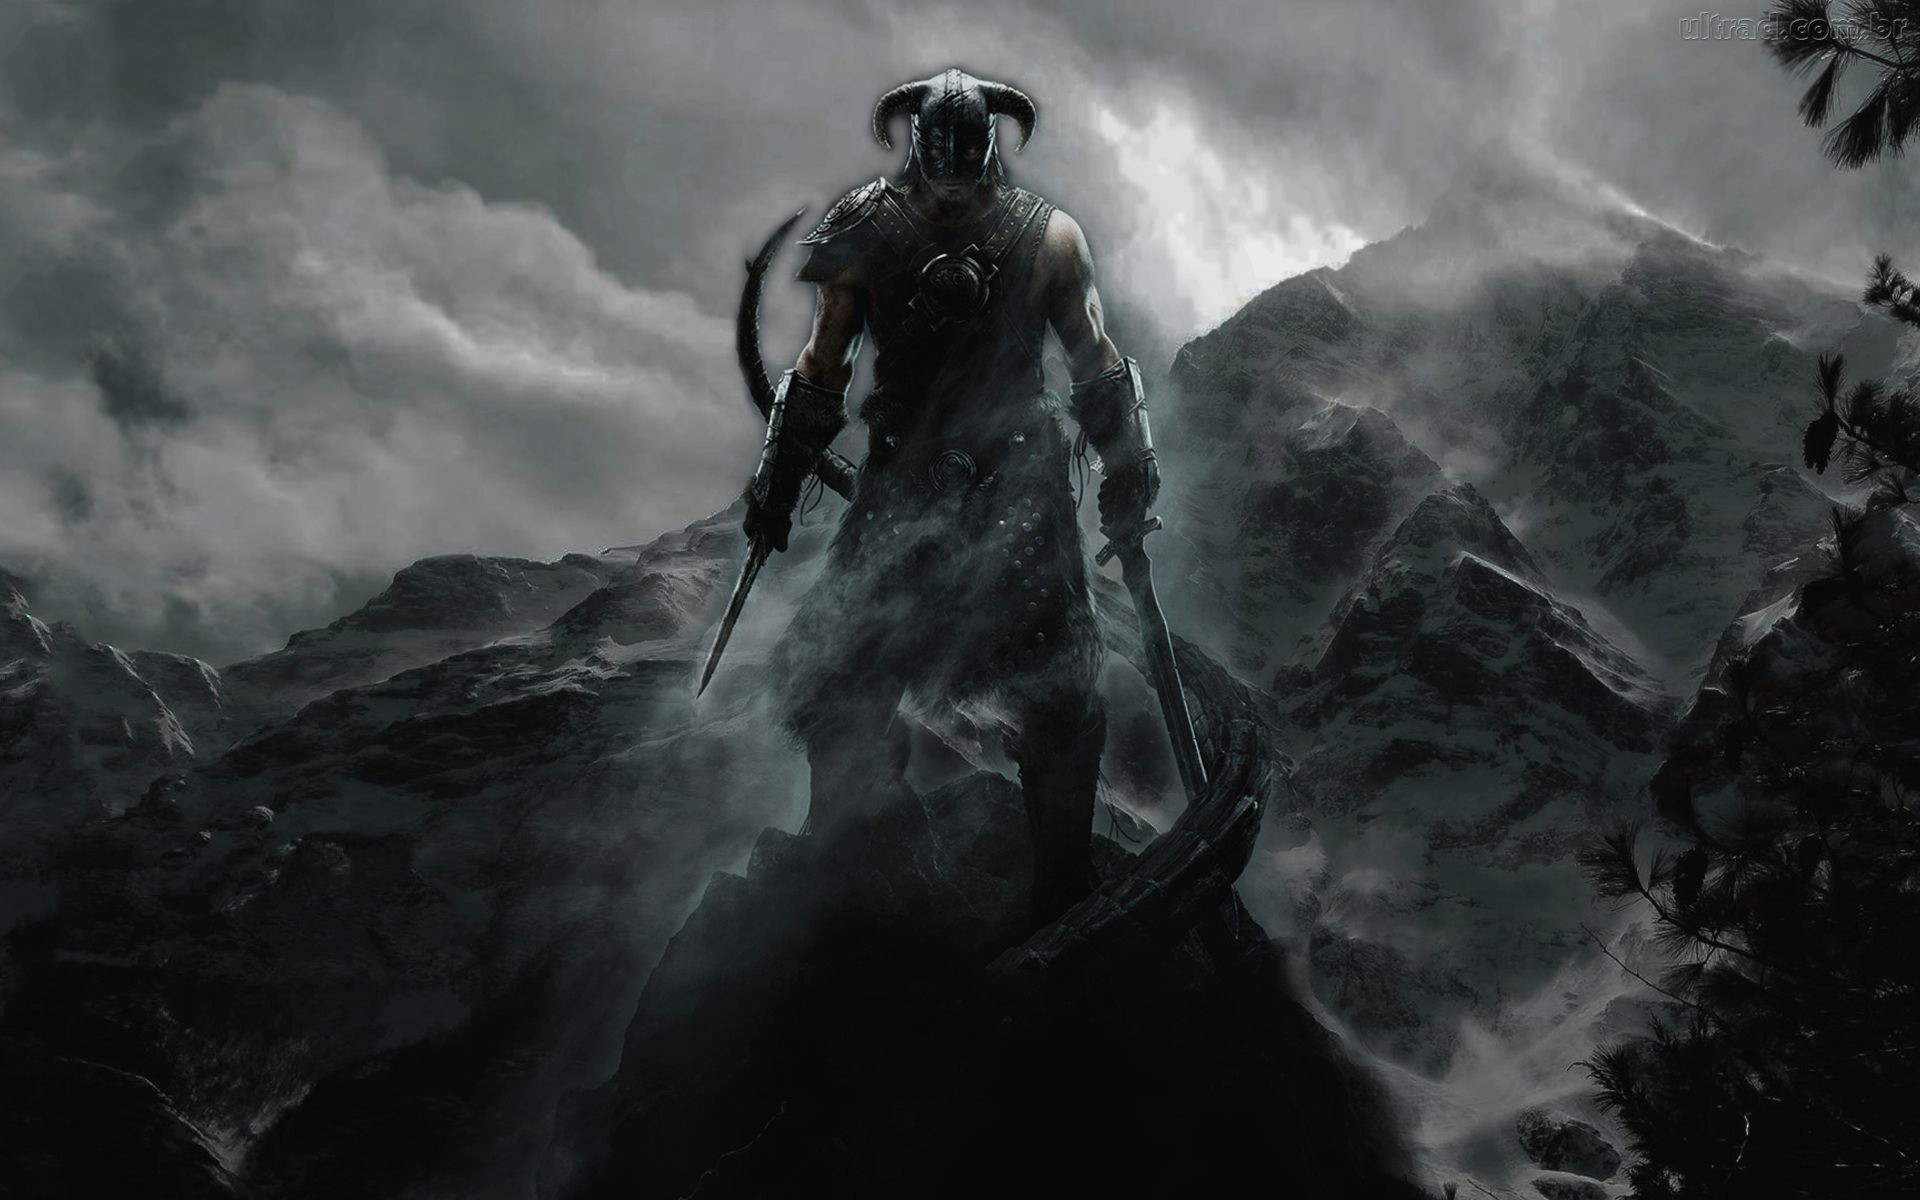 Res: 1920x1200, The Elder Scrolls V Skyrim wallpapers for iphone